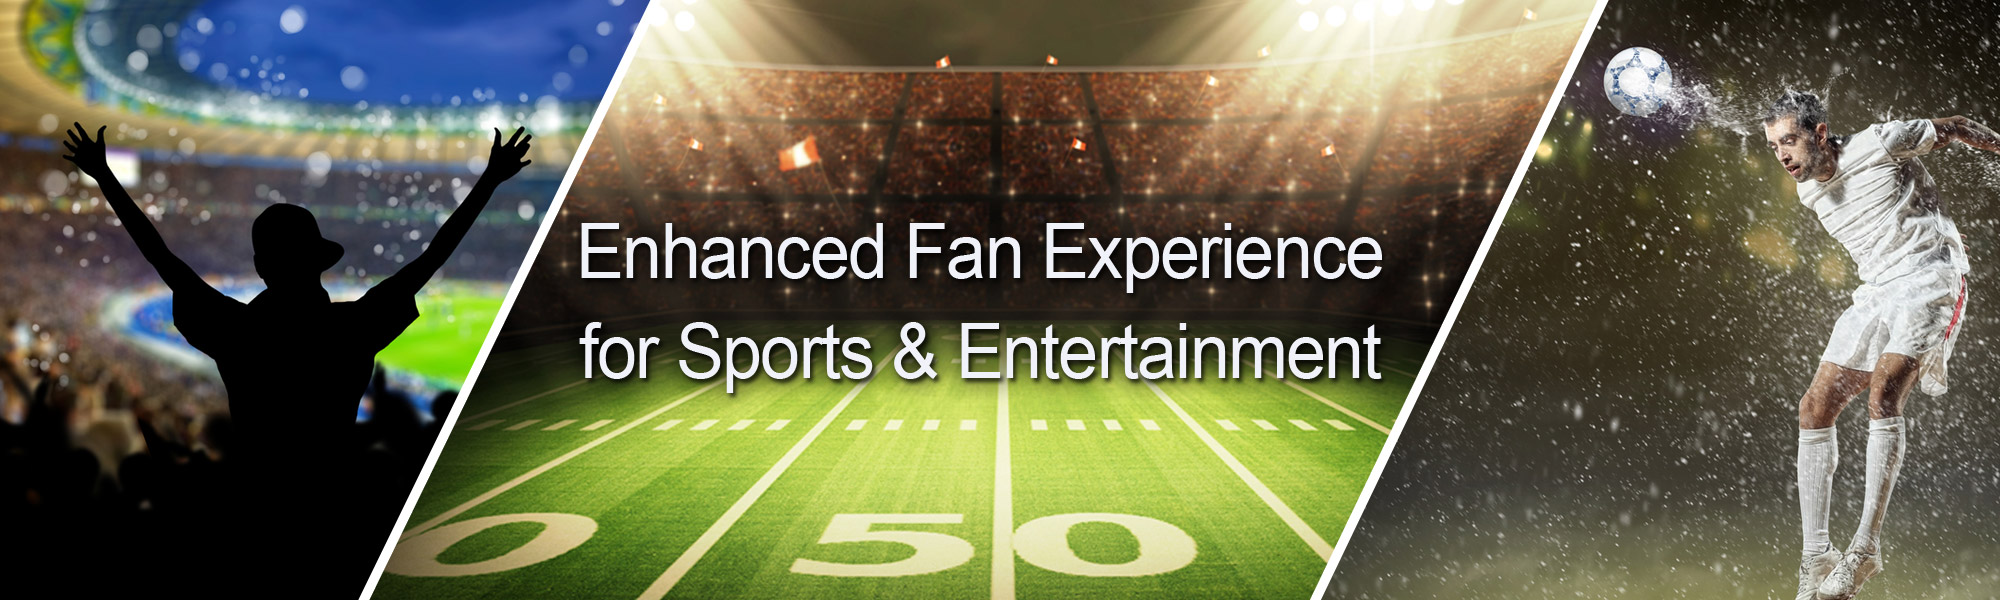 Enhanced Fan Experience for Sports and Entertainment